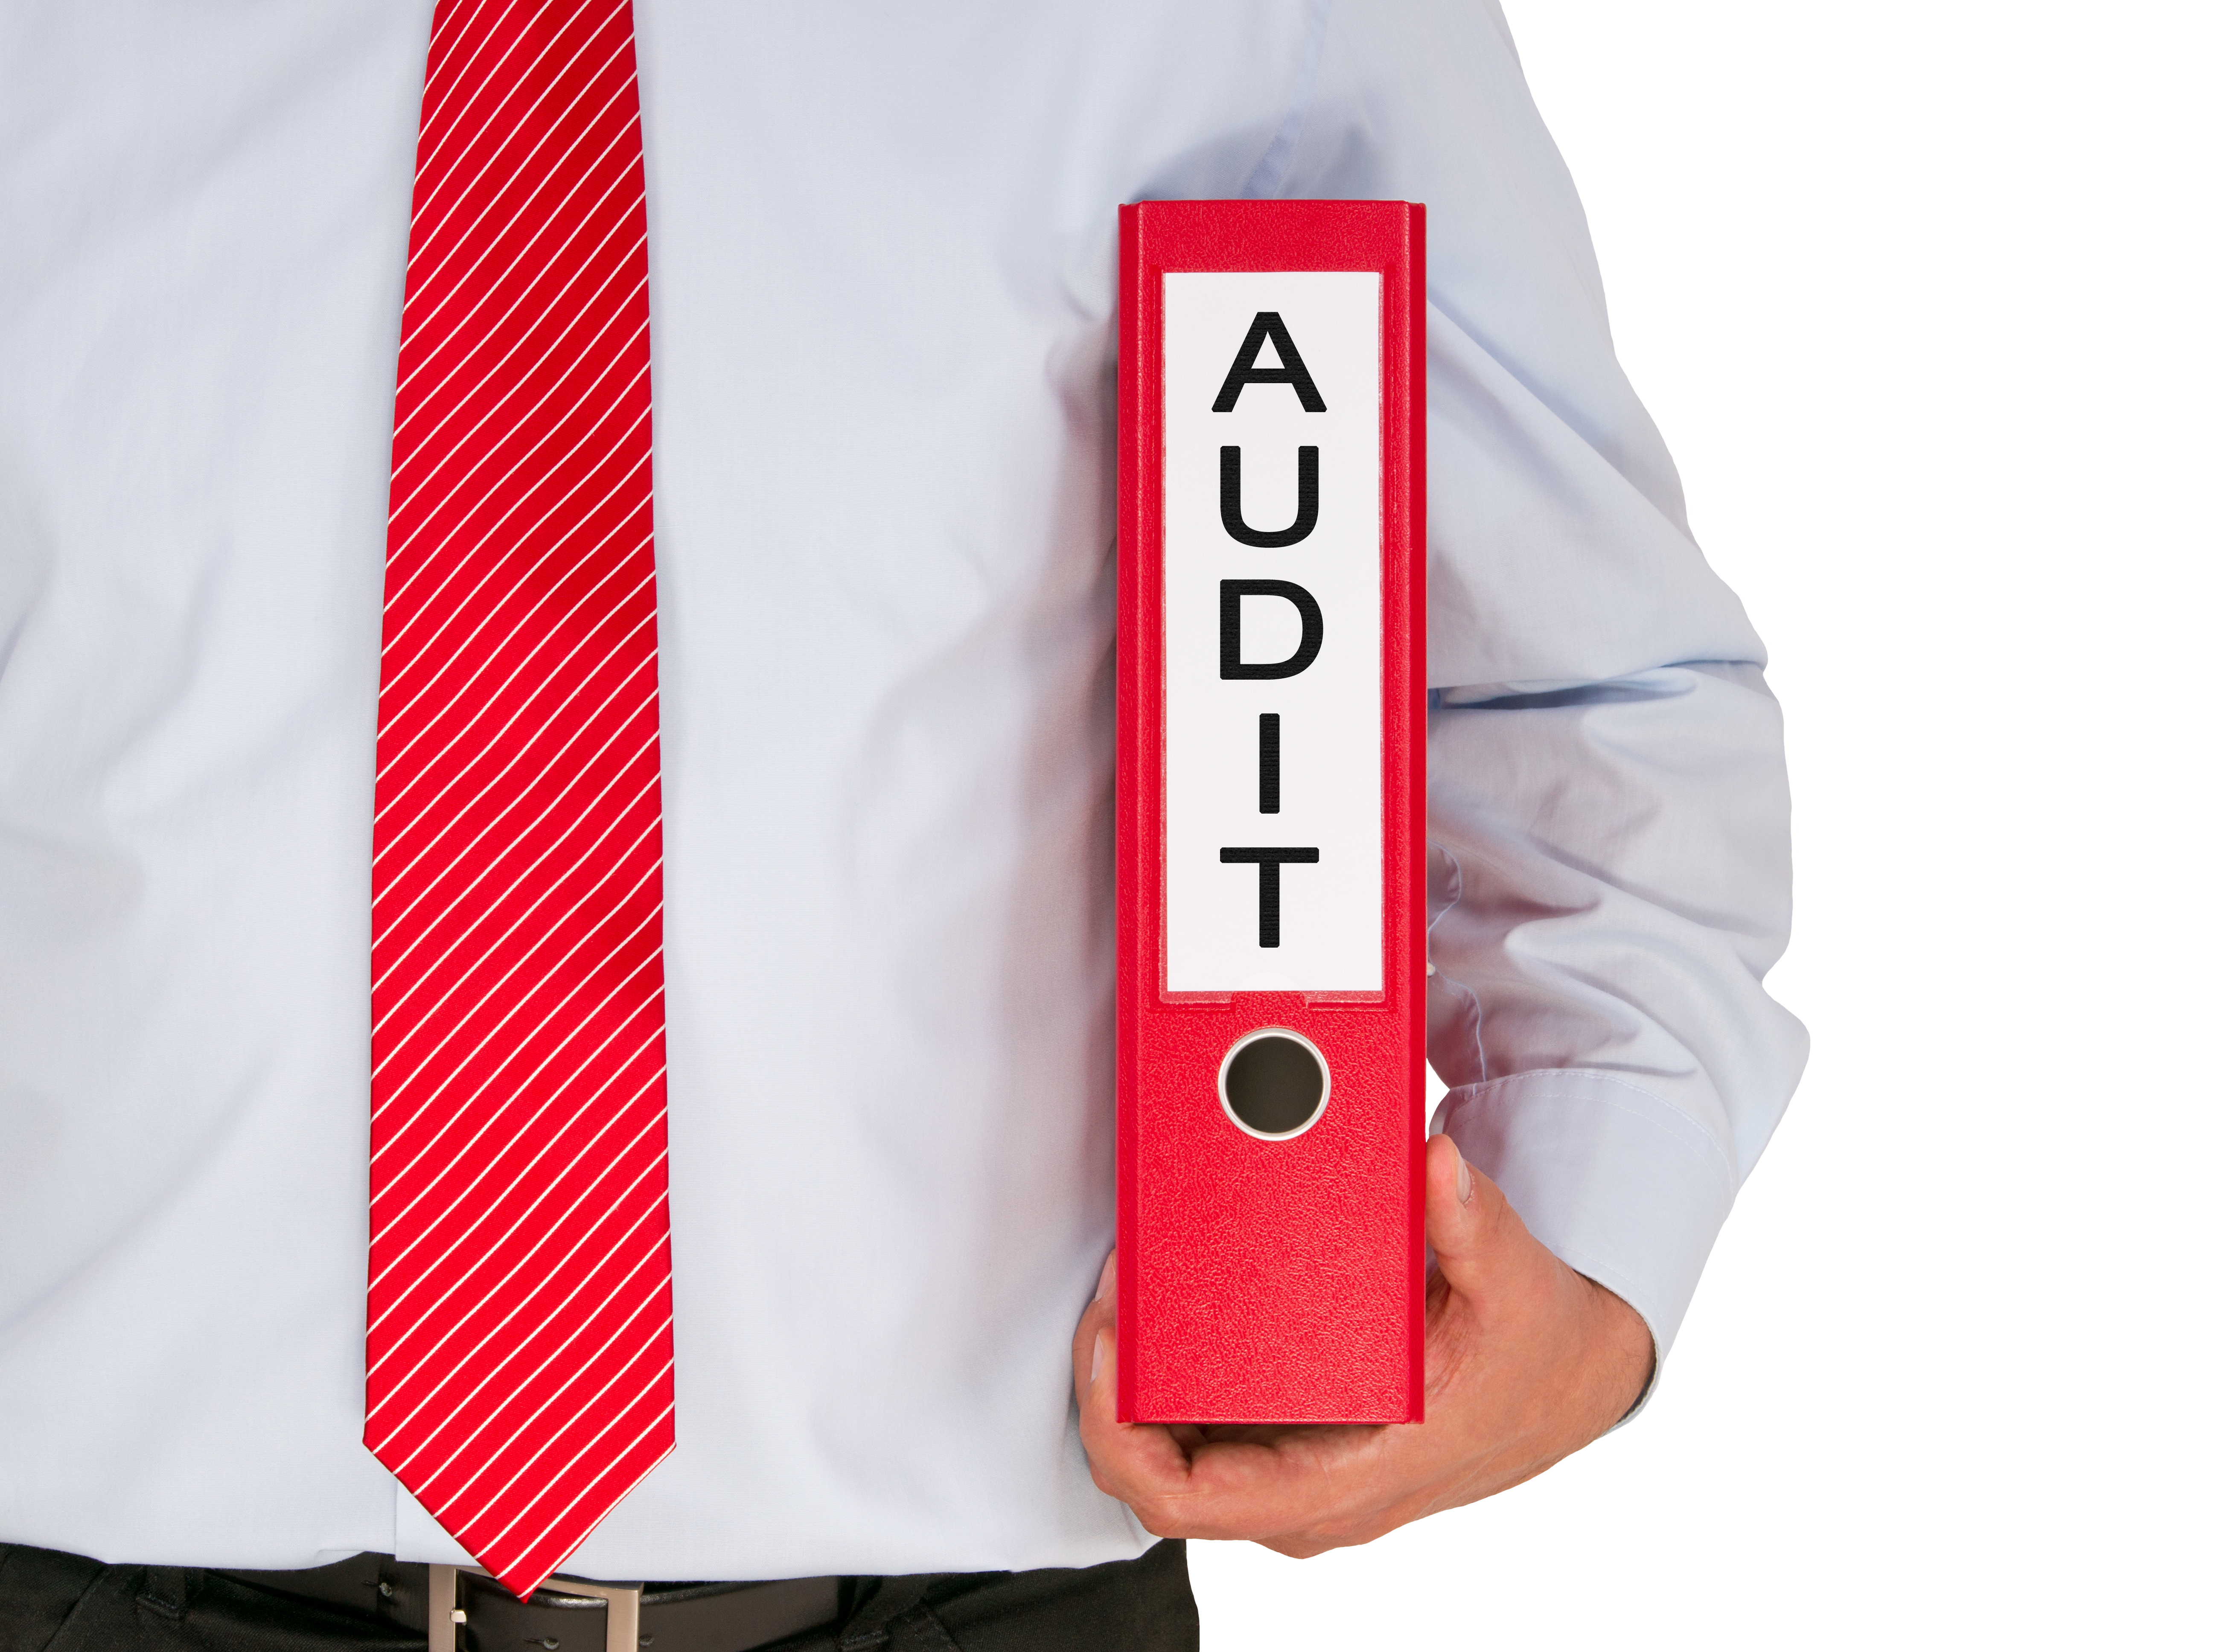 auditor s and director s liability to third Examines the diversity in the approaches to determine auditors' liability for negligence to third  auditor mercer, collin // director  the auditor's.